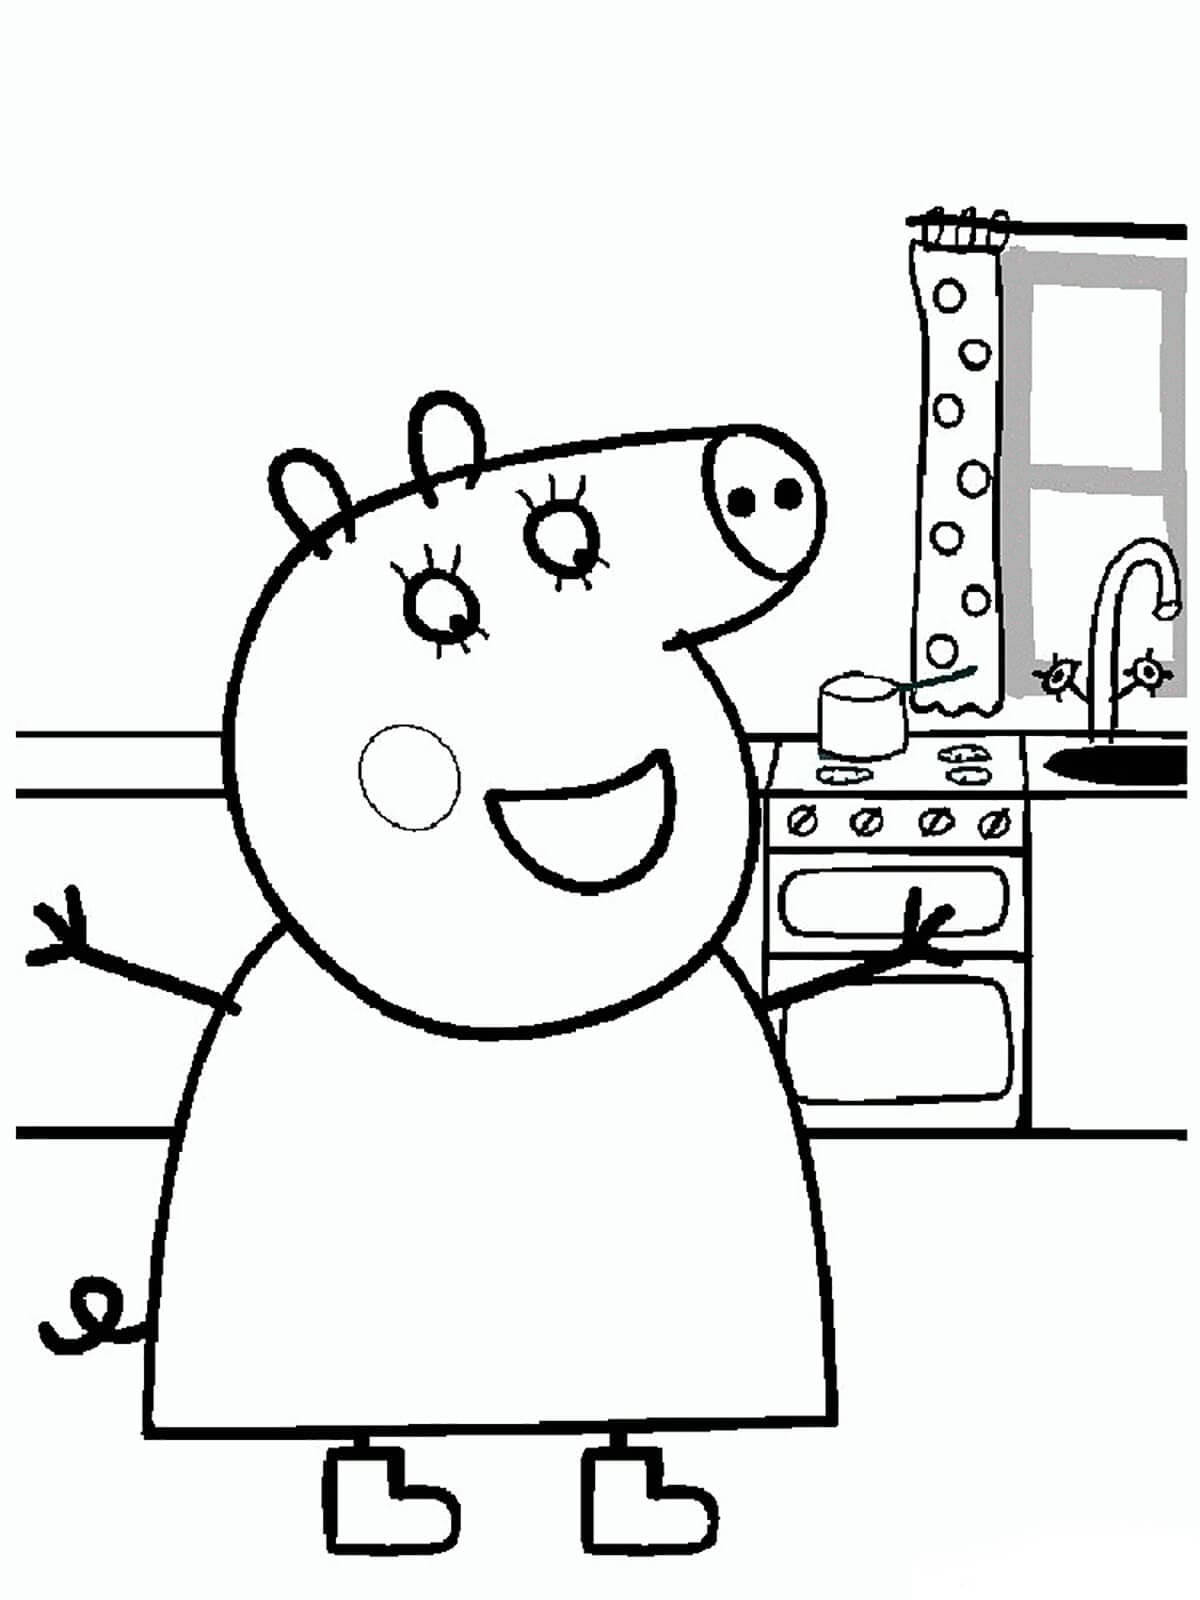 Coloring Pages : Peppa Pig Coloring Her Family And Friends dedans Peppa Pig A Colorier